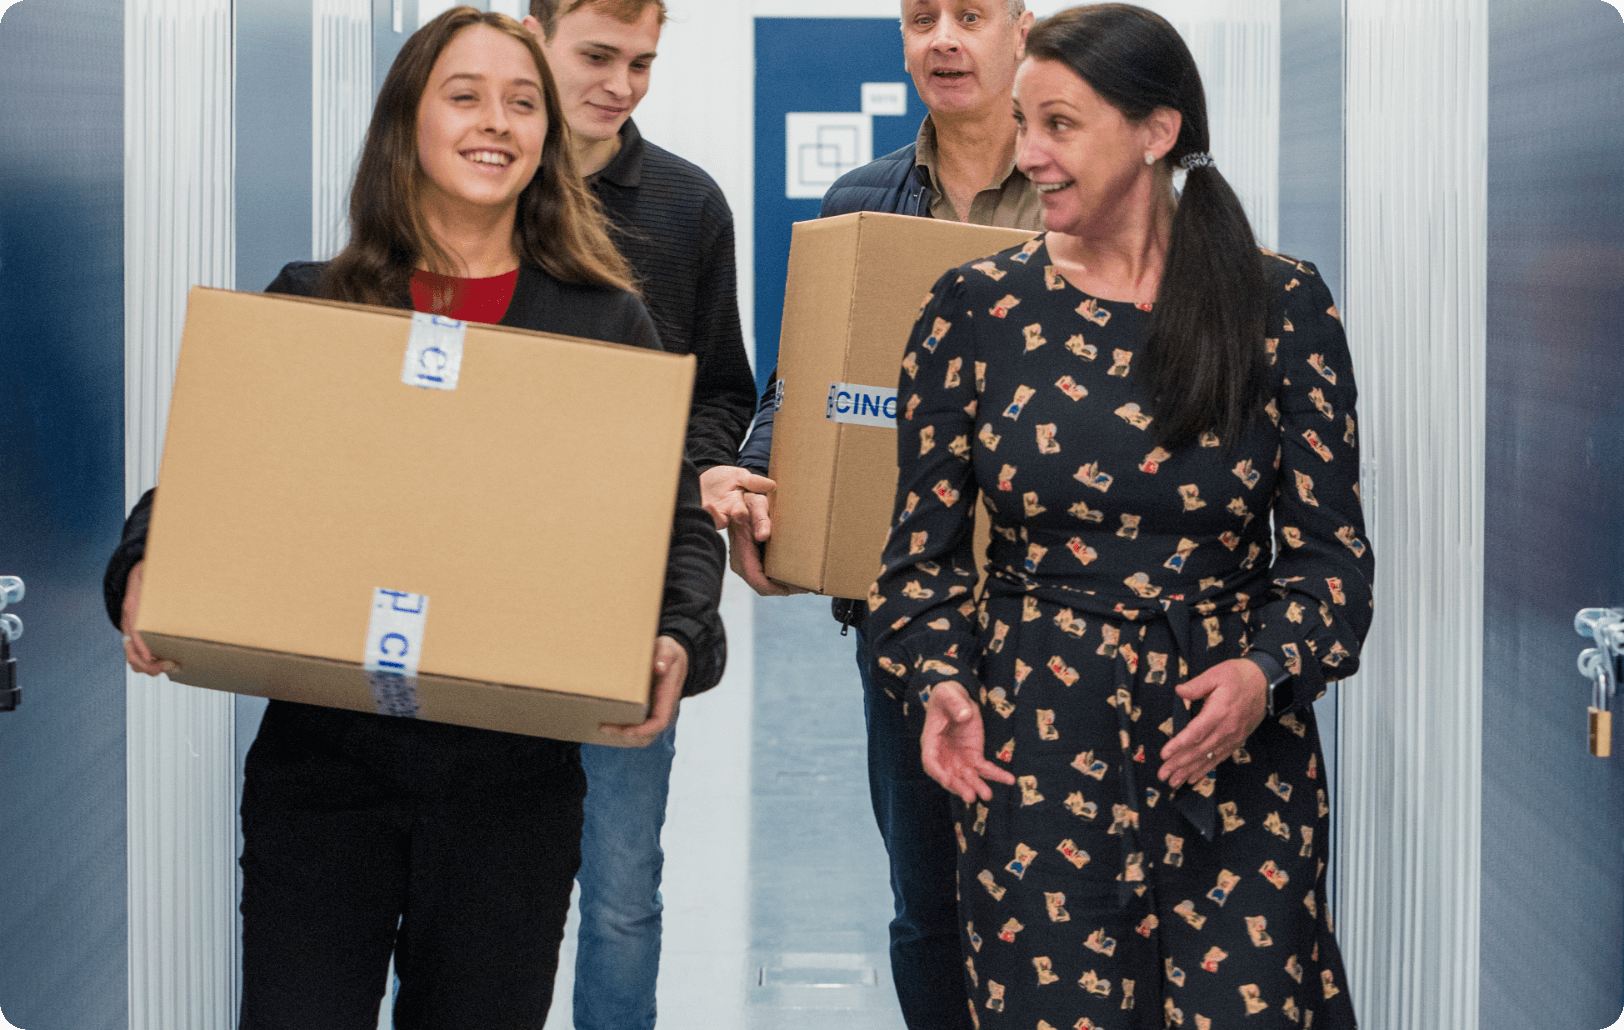 Two people carrying boxes while talking with their friends through a hallway